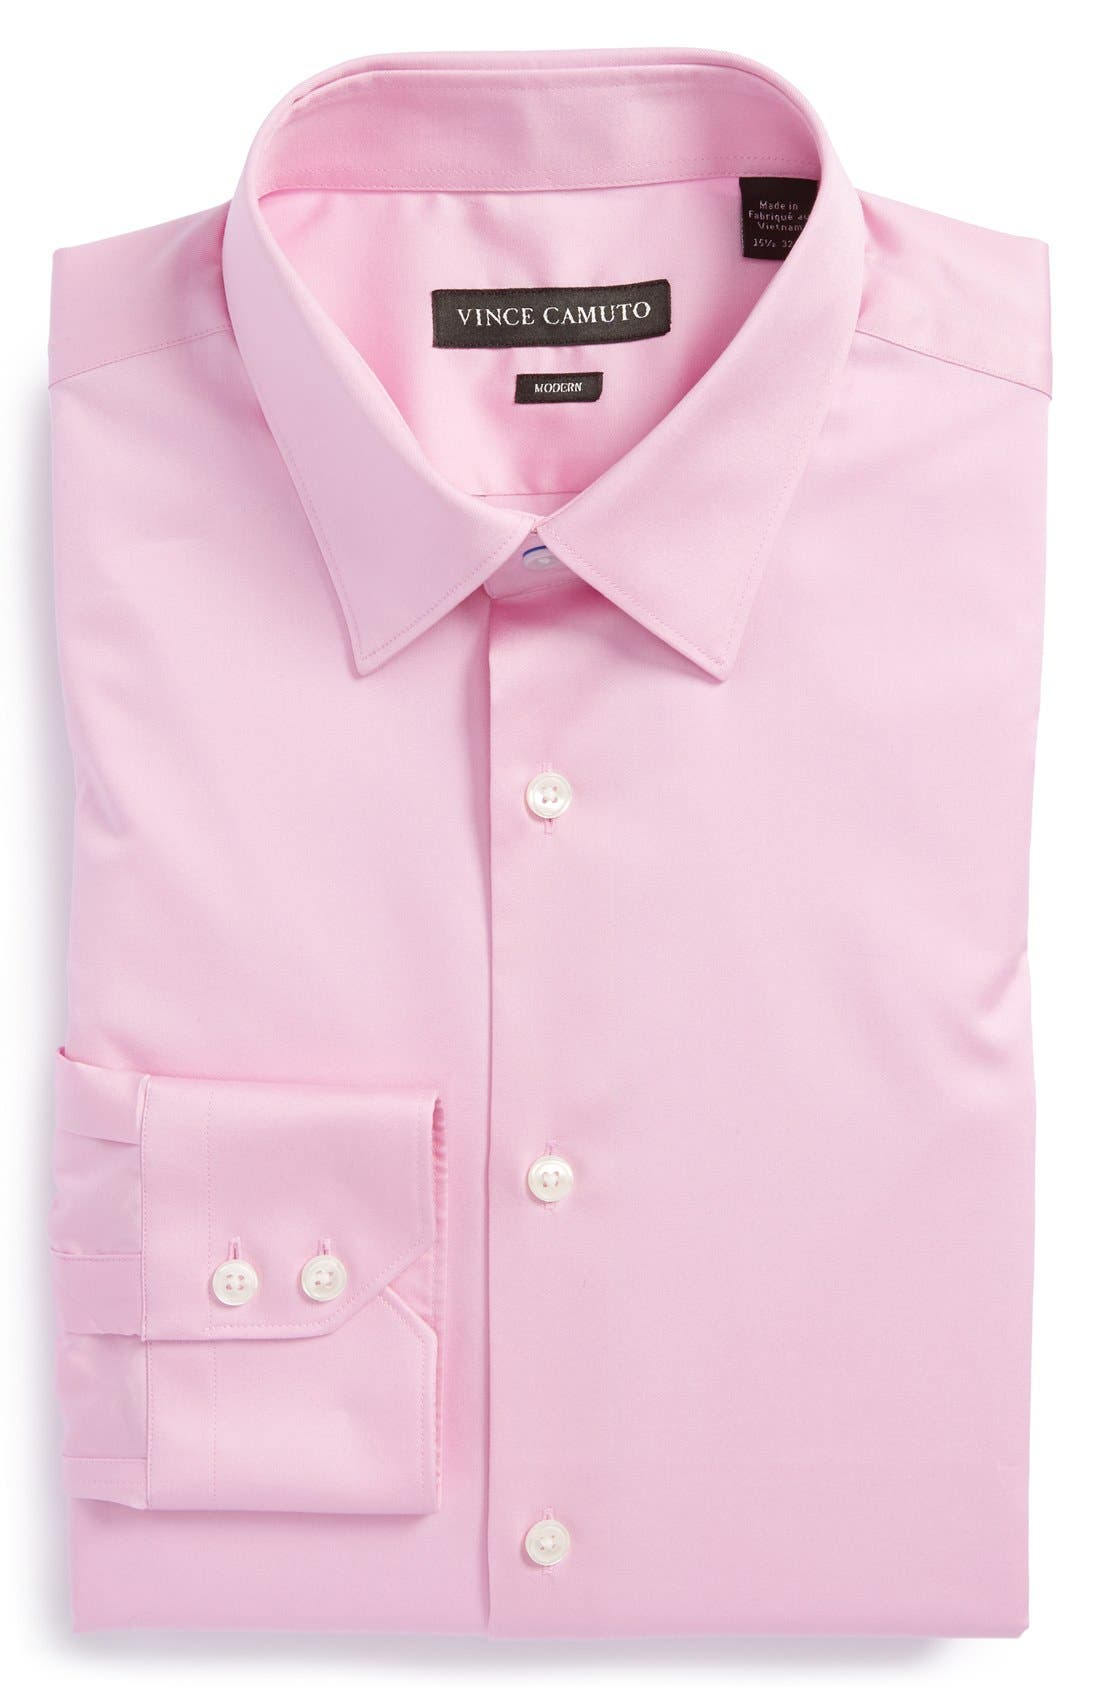 Alternate Image 1 Selected - Vince Camuto Modern Fit Solid Dress Shirt